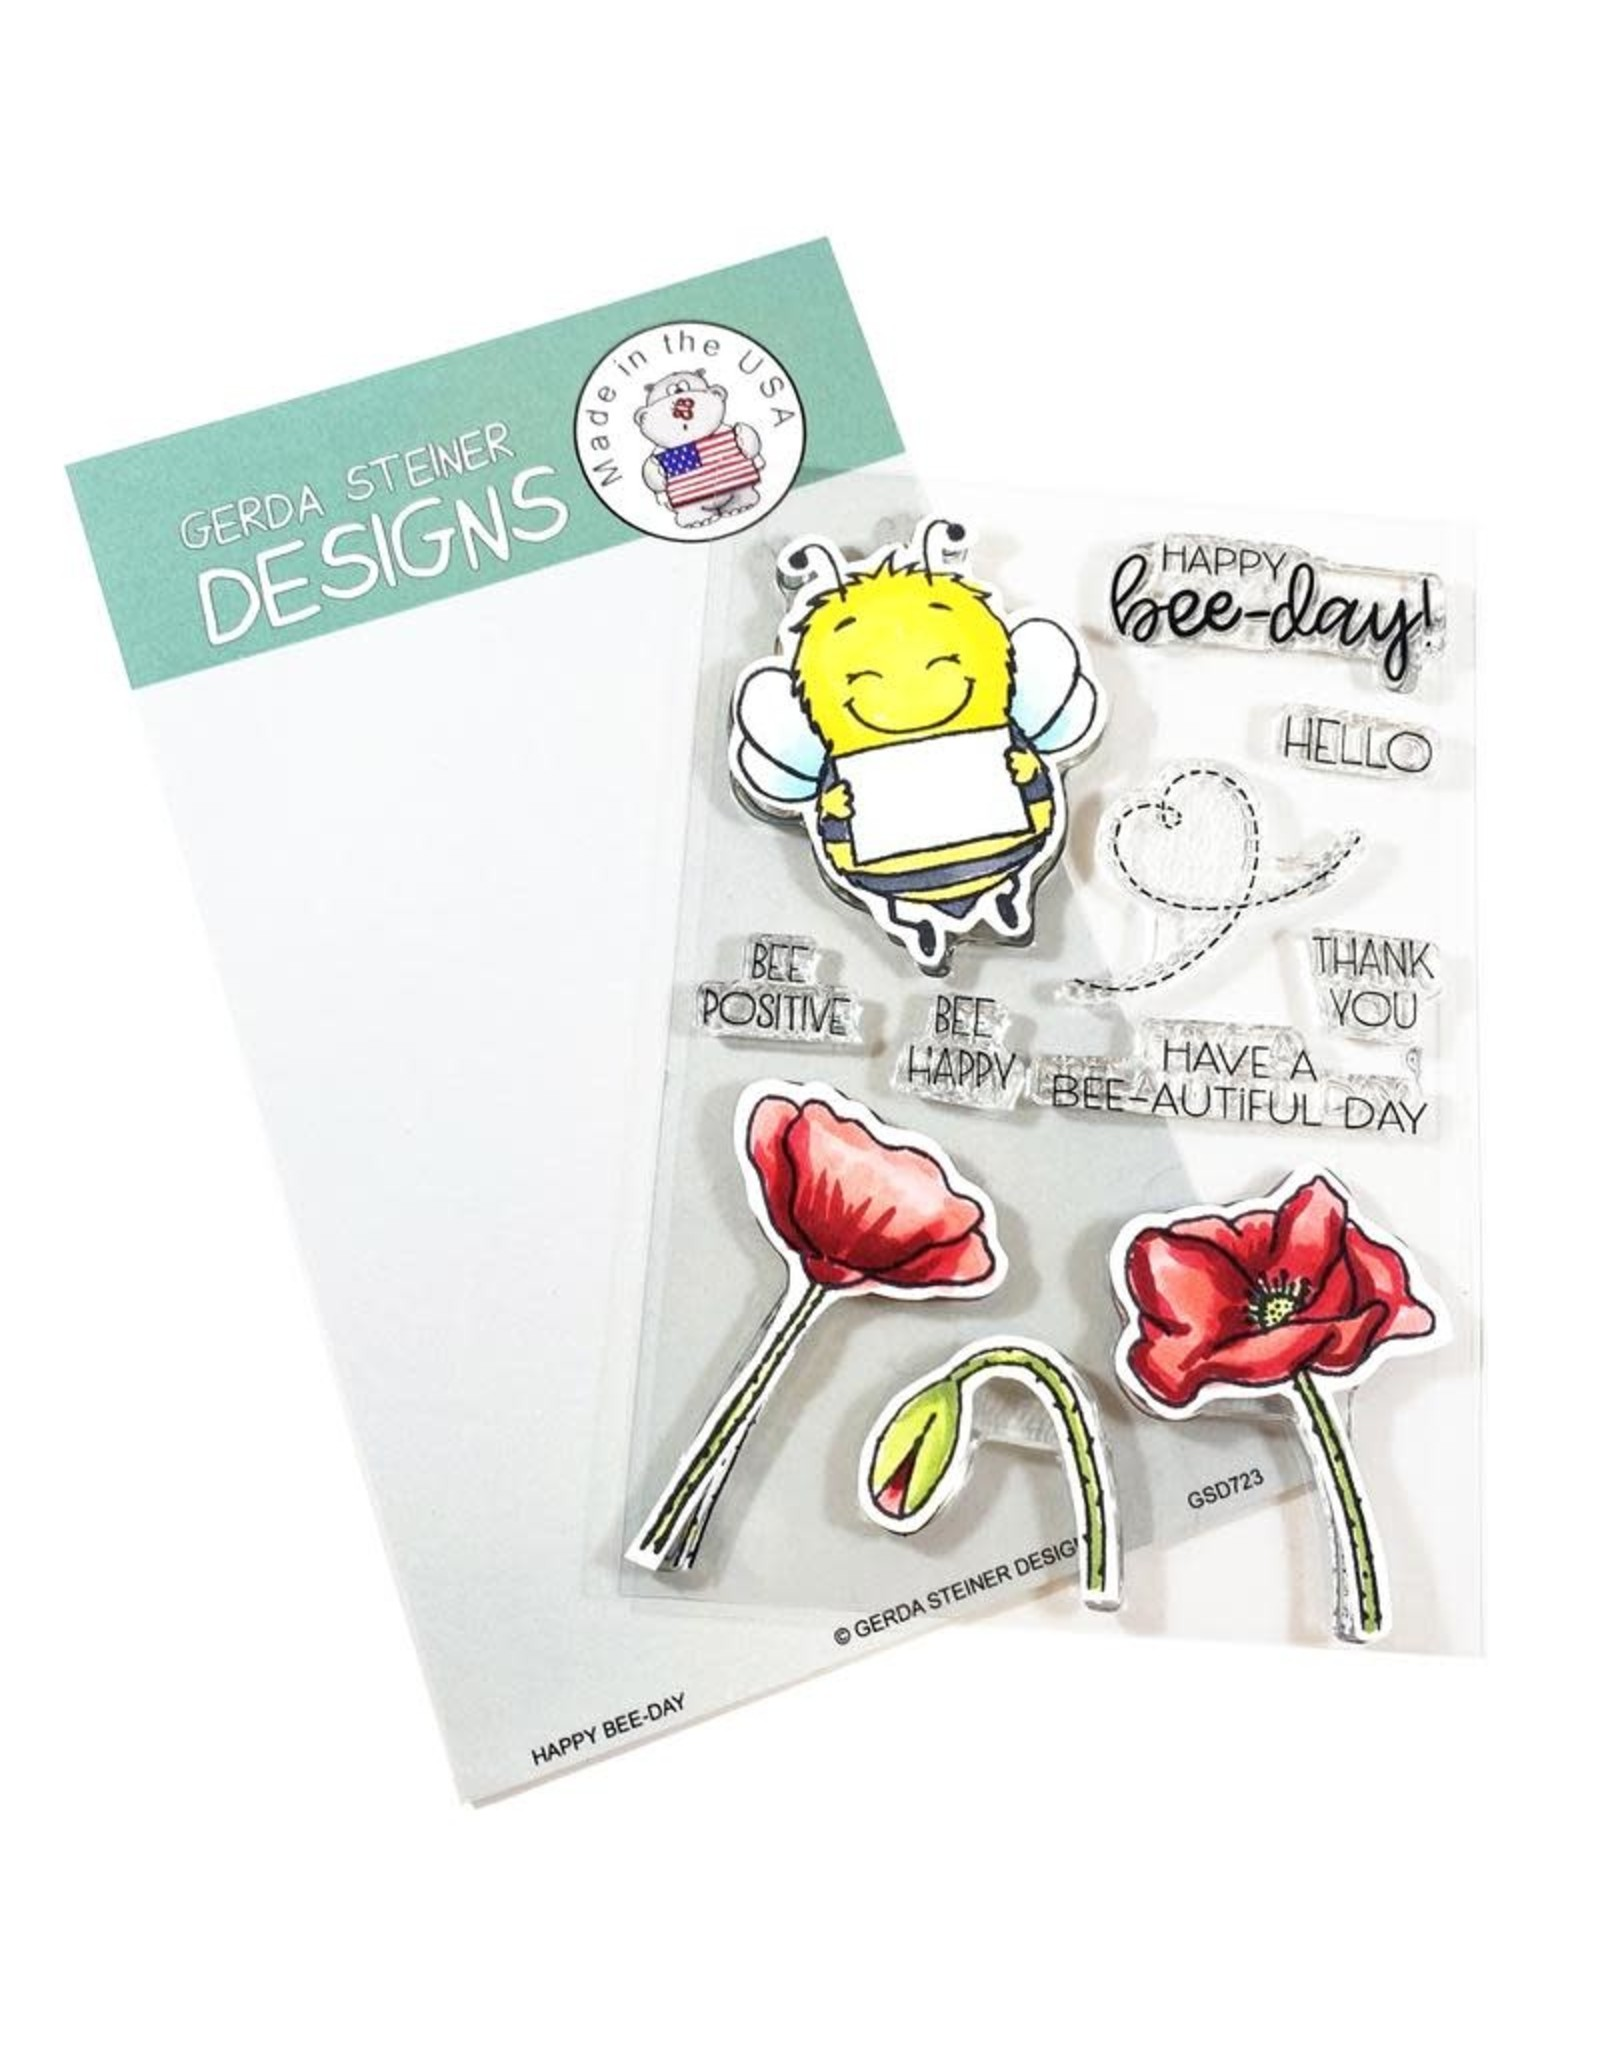 Gerda Steiner Designs Happy Bee-Day Die Set